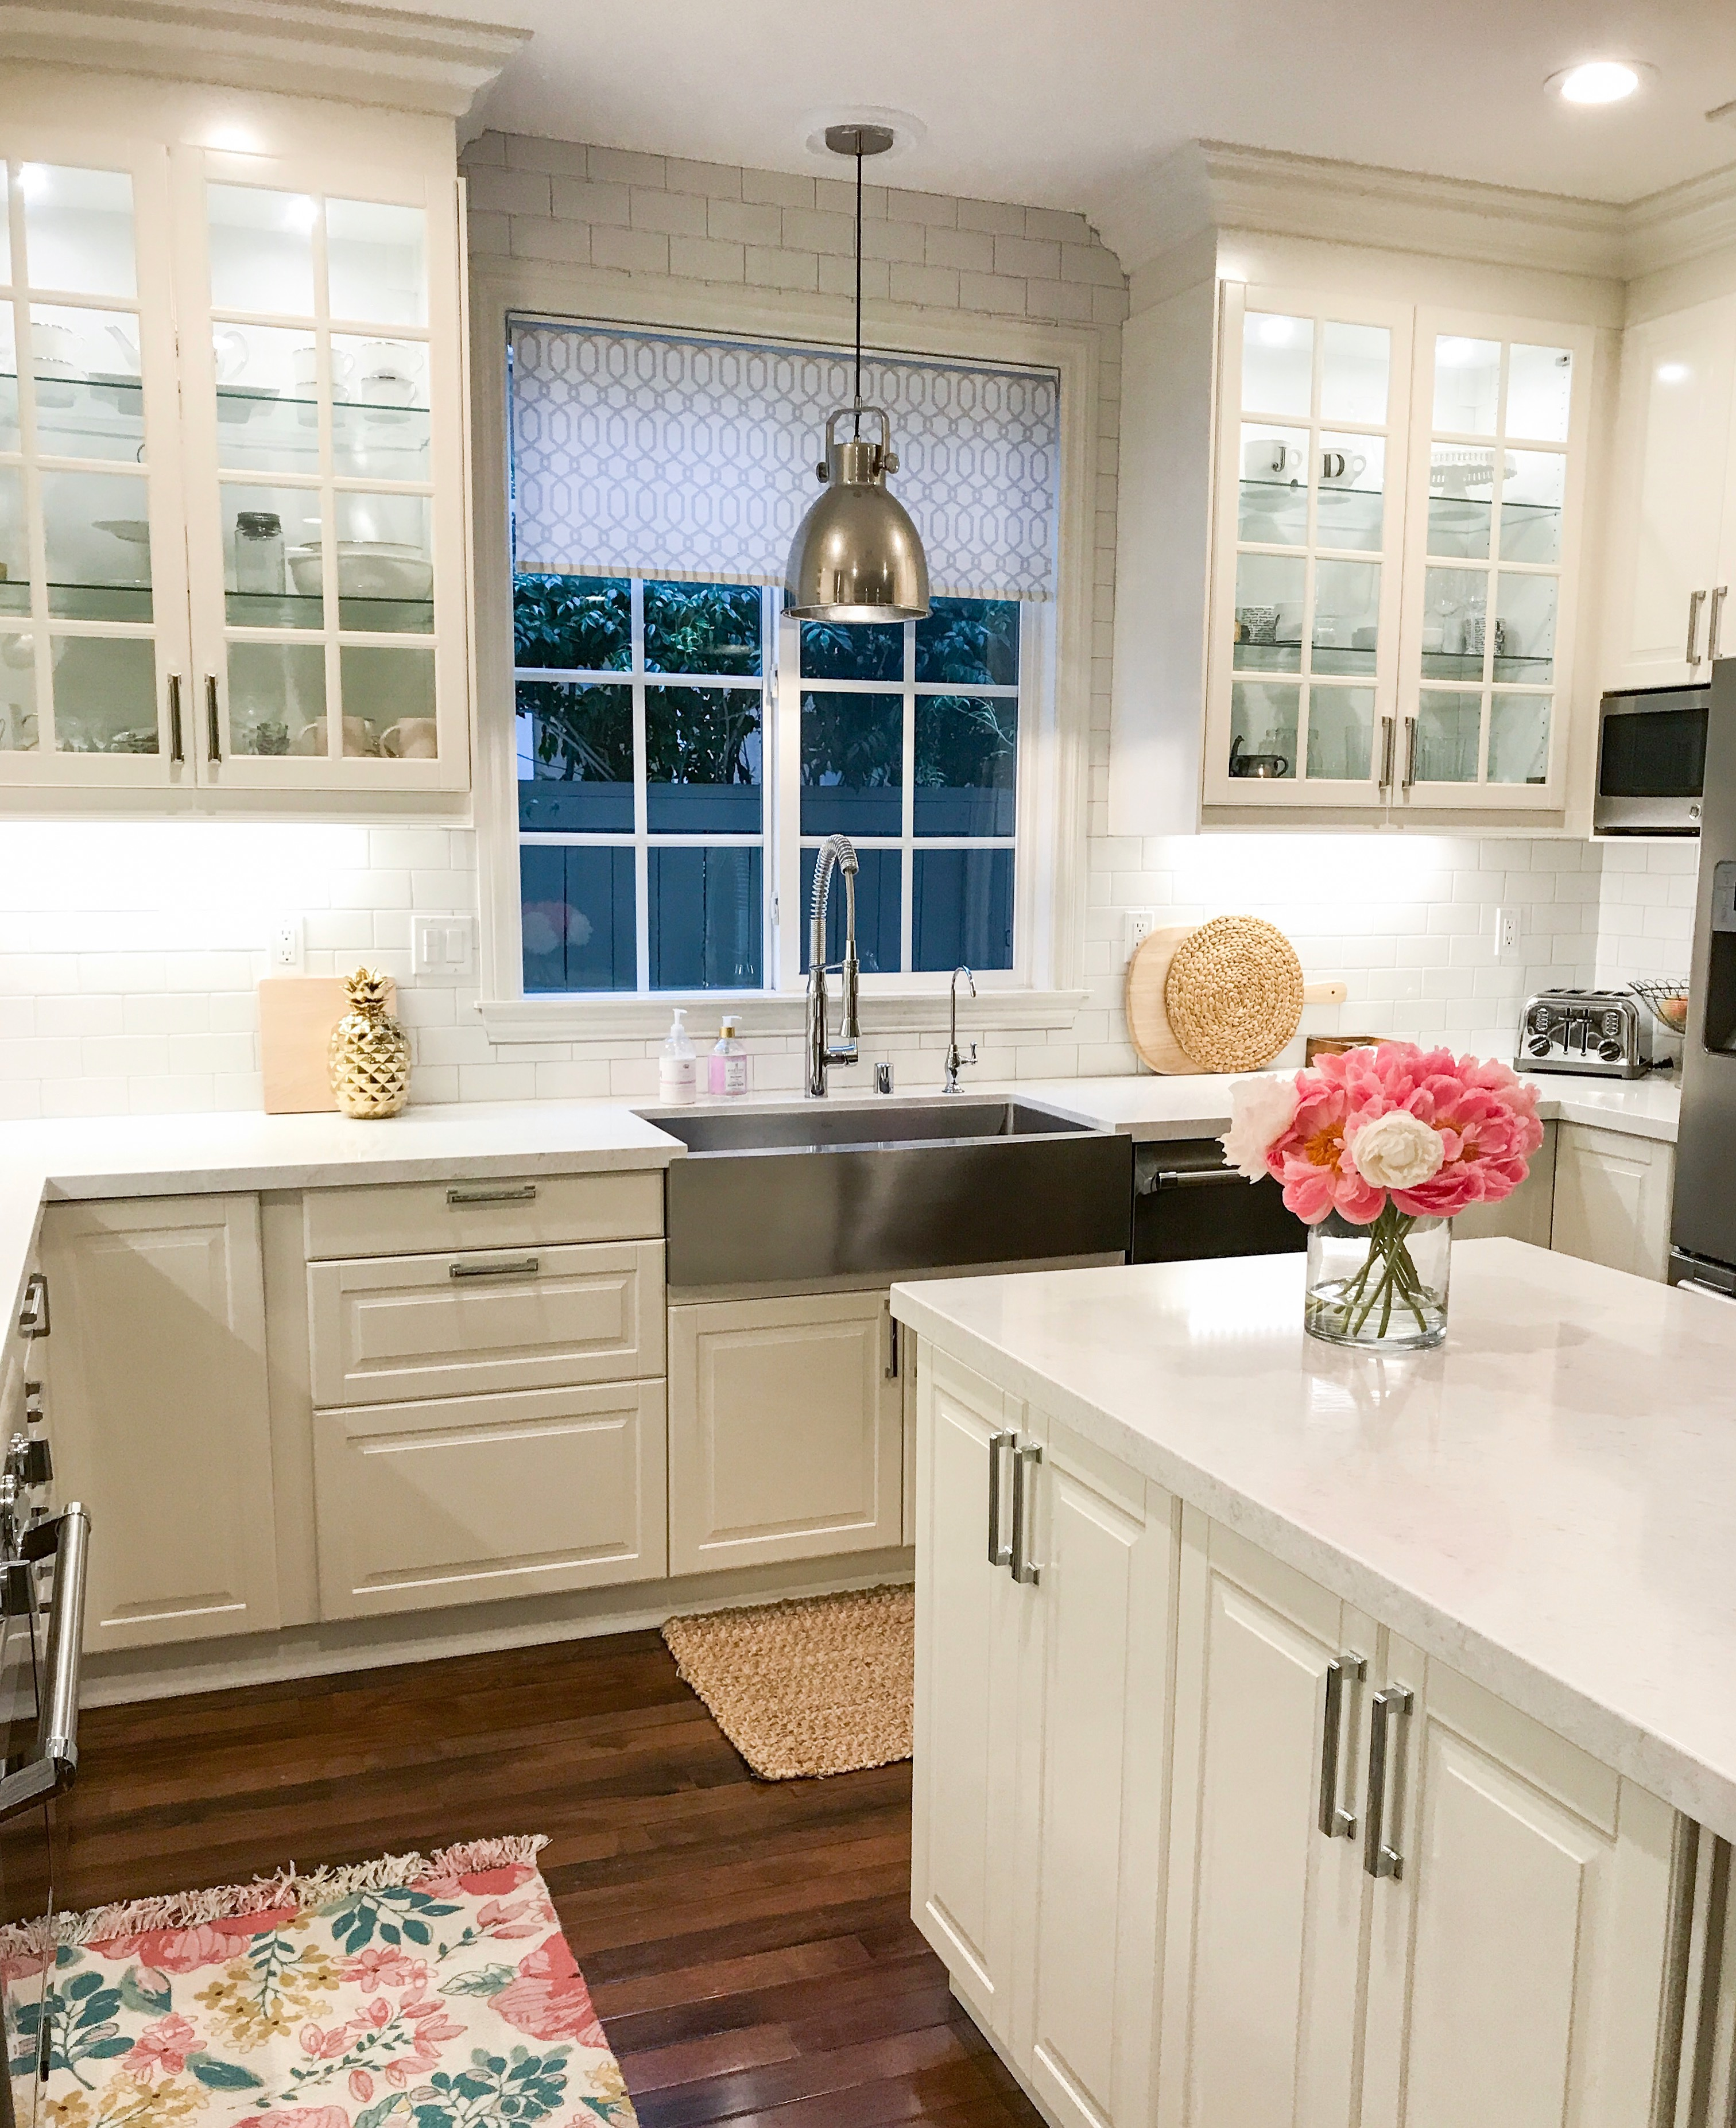 Ikea Kitchen Upper Cabinets: How To Customize Your IKEA Kitchen: 10 Tips To Make It